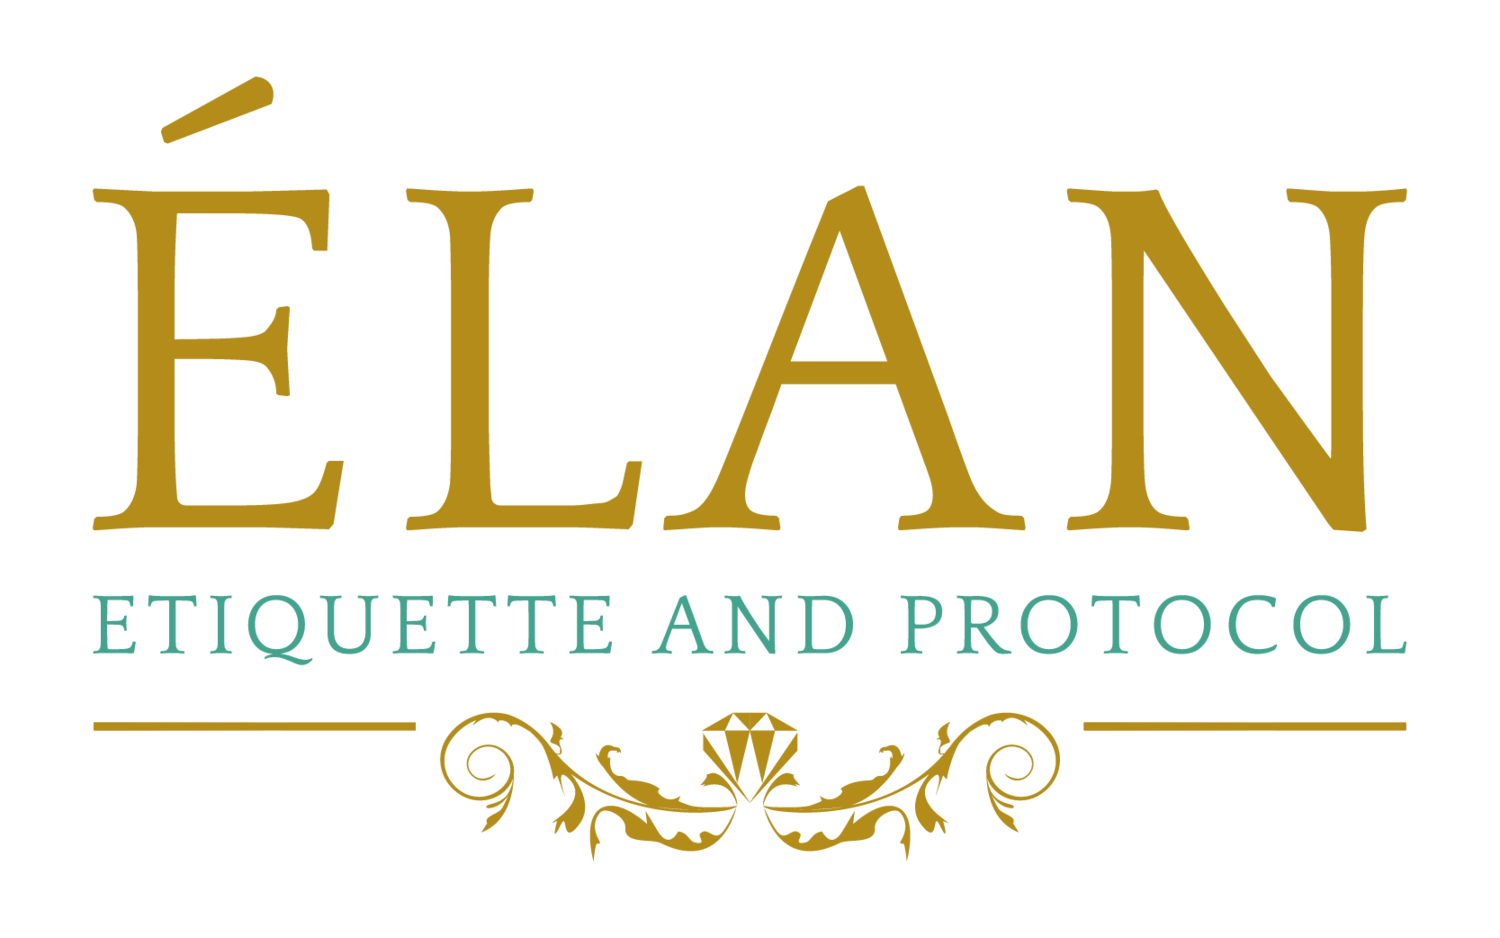 Elan Etiquette - International Etiquette and Protocol